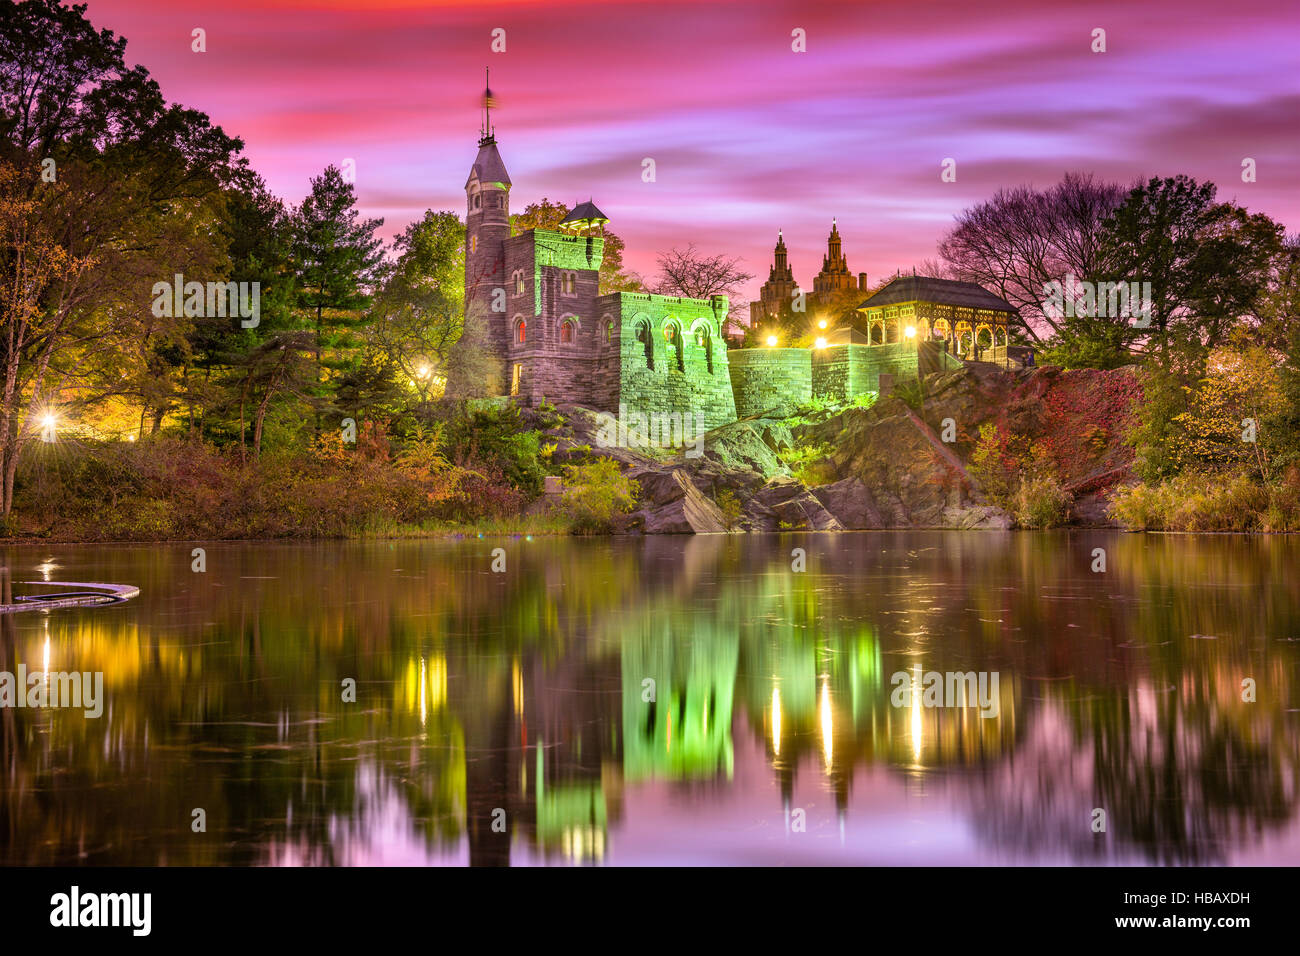 Central Park, New York City at Belvedere Castle during an autumn twilight. - Stock Image